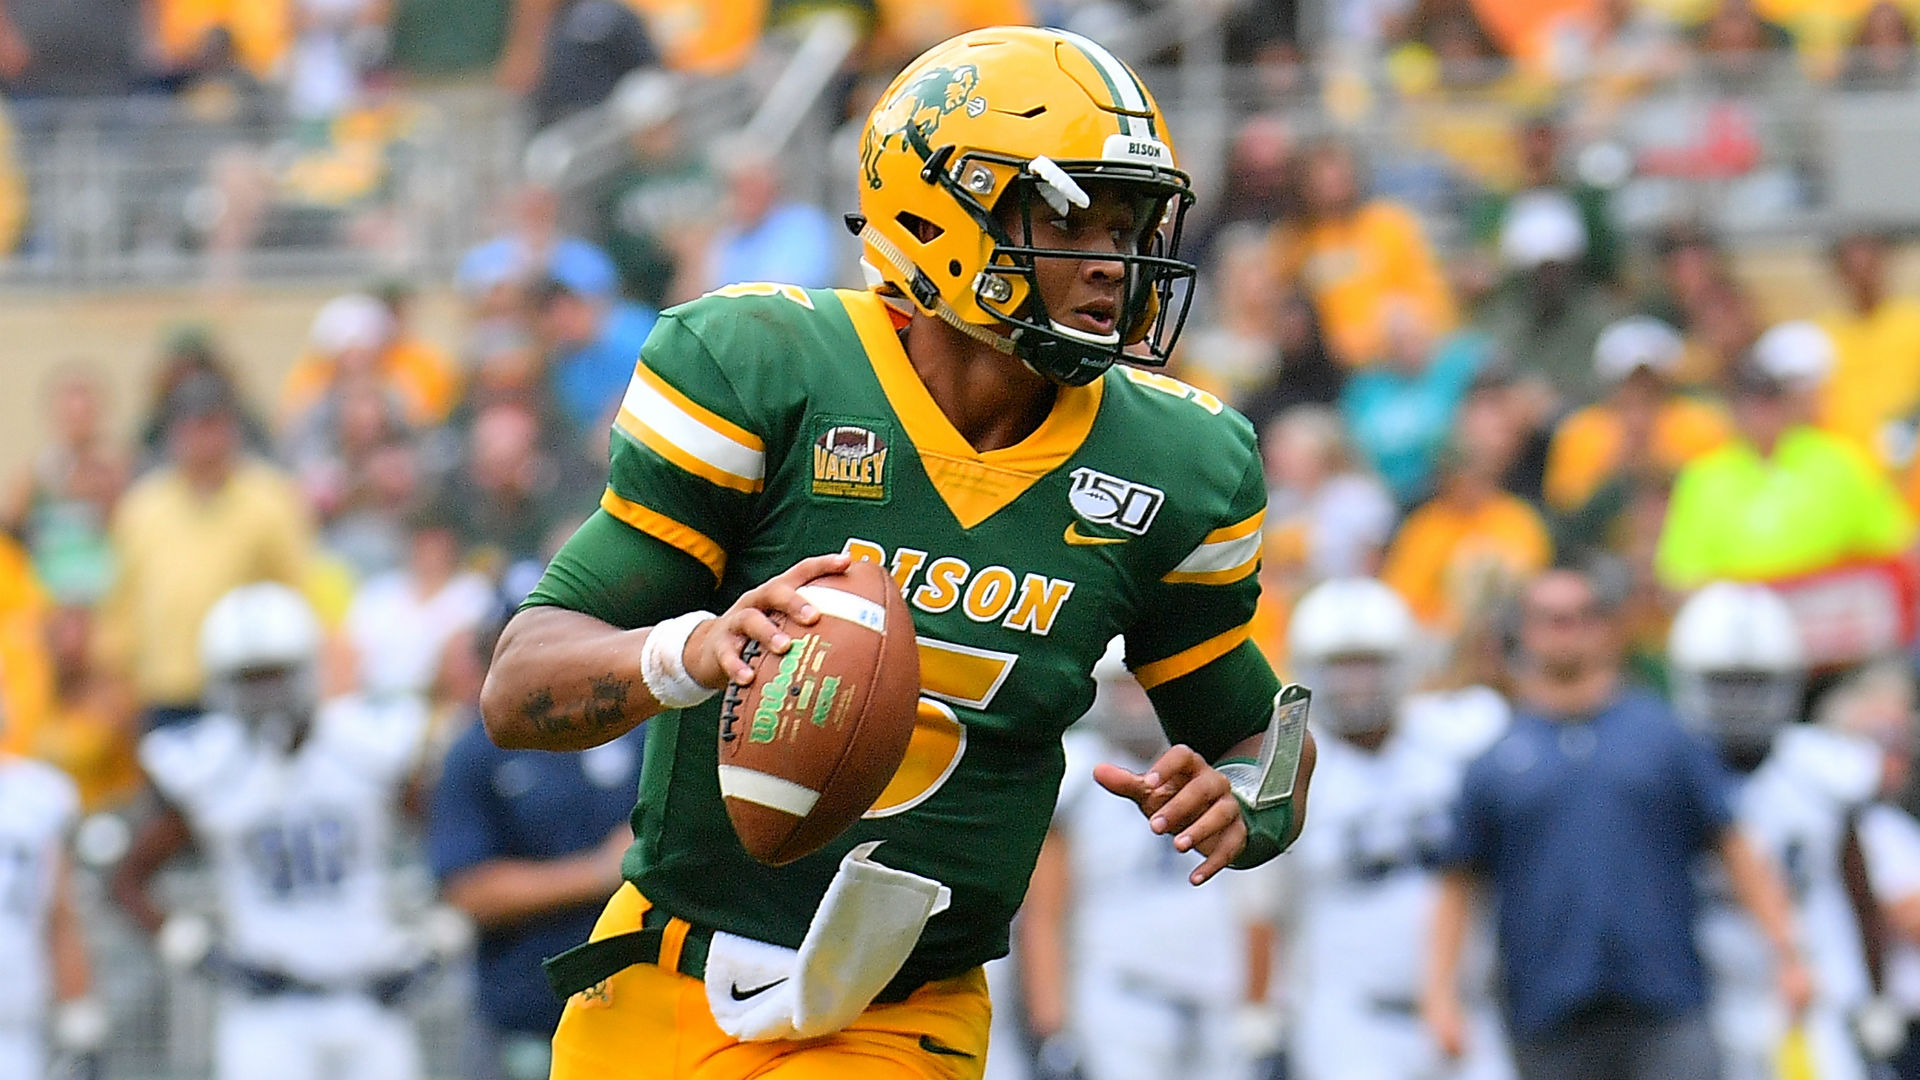 Meet Trey Lance, NDSU's mystery quarterback near the top of 2021 NFL mock drafts